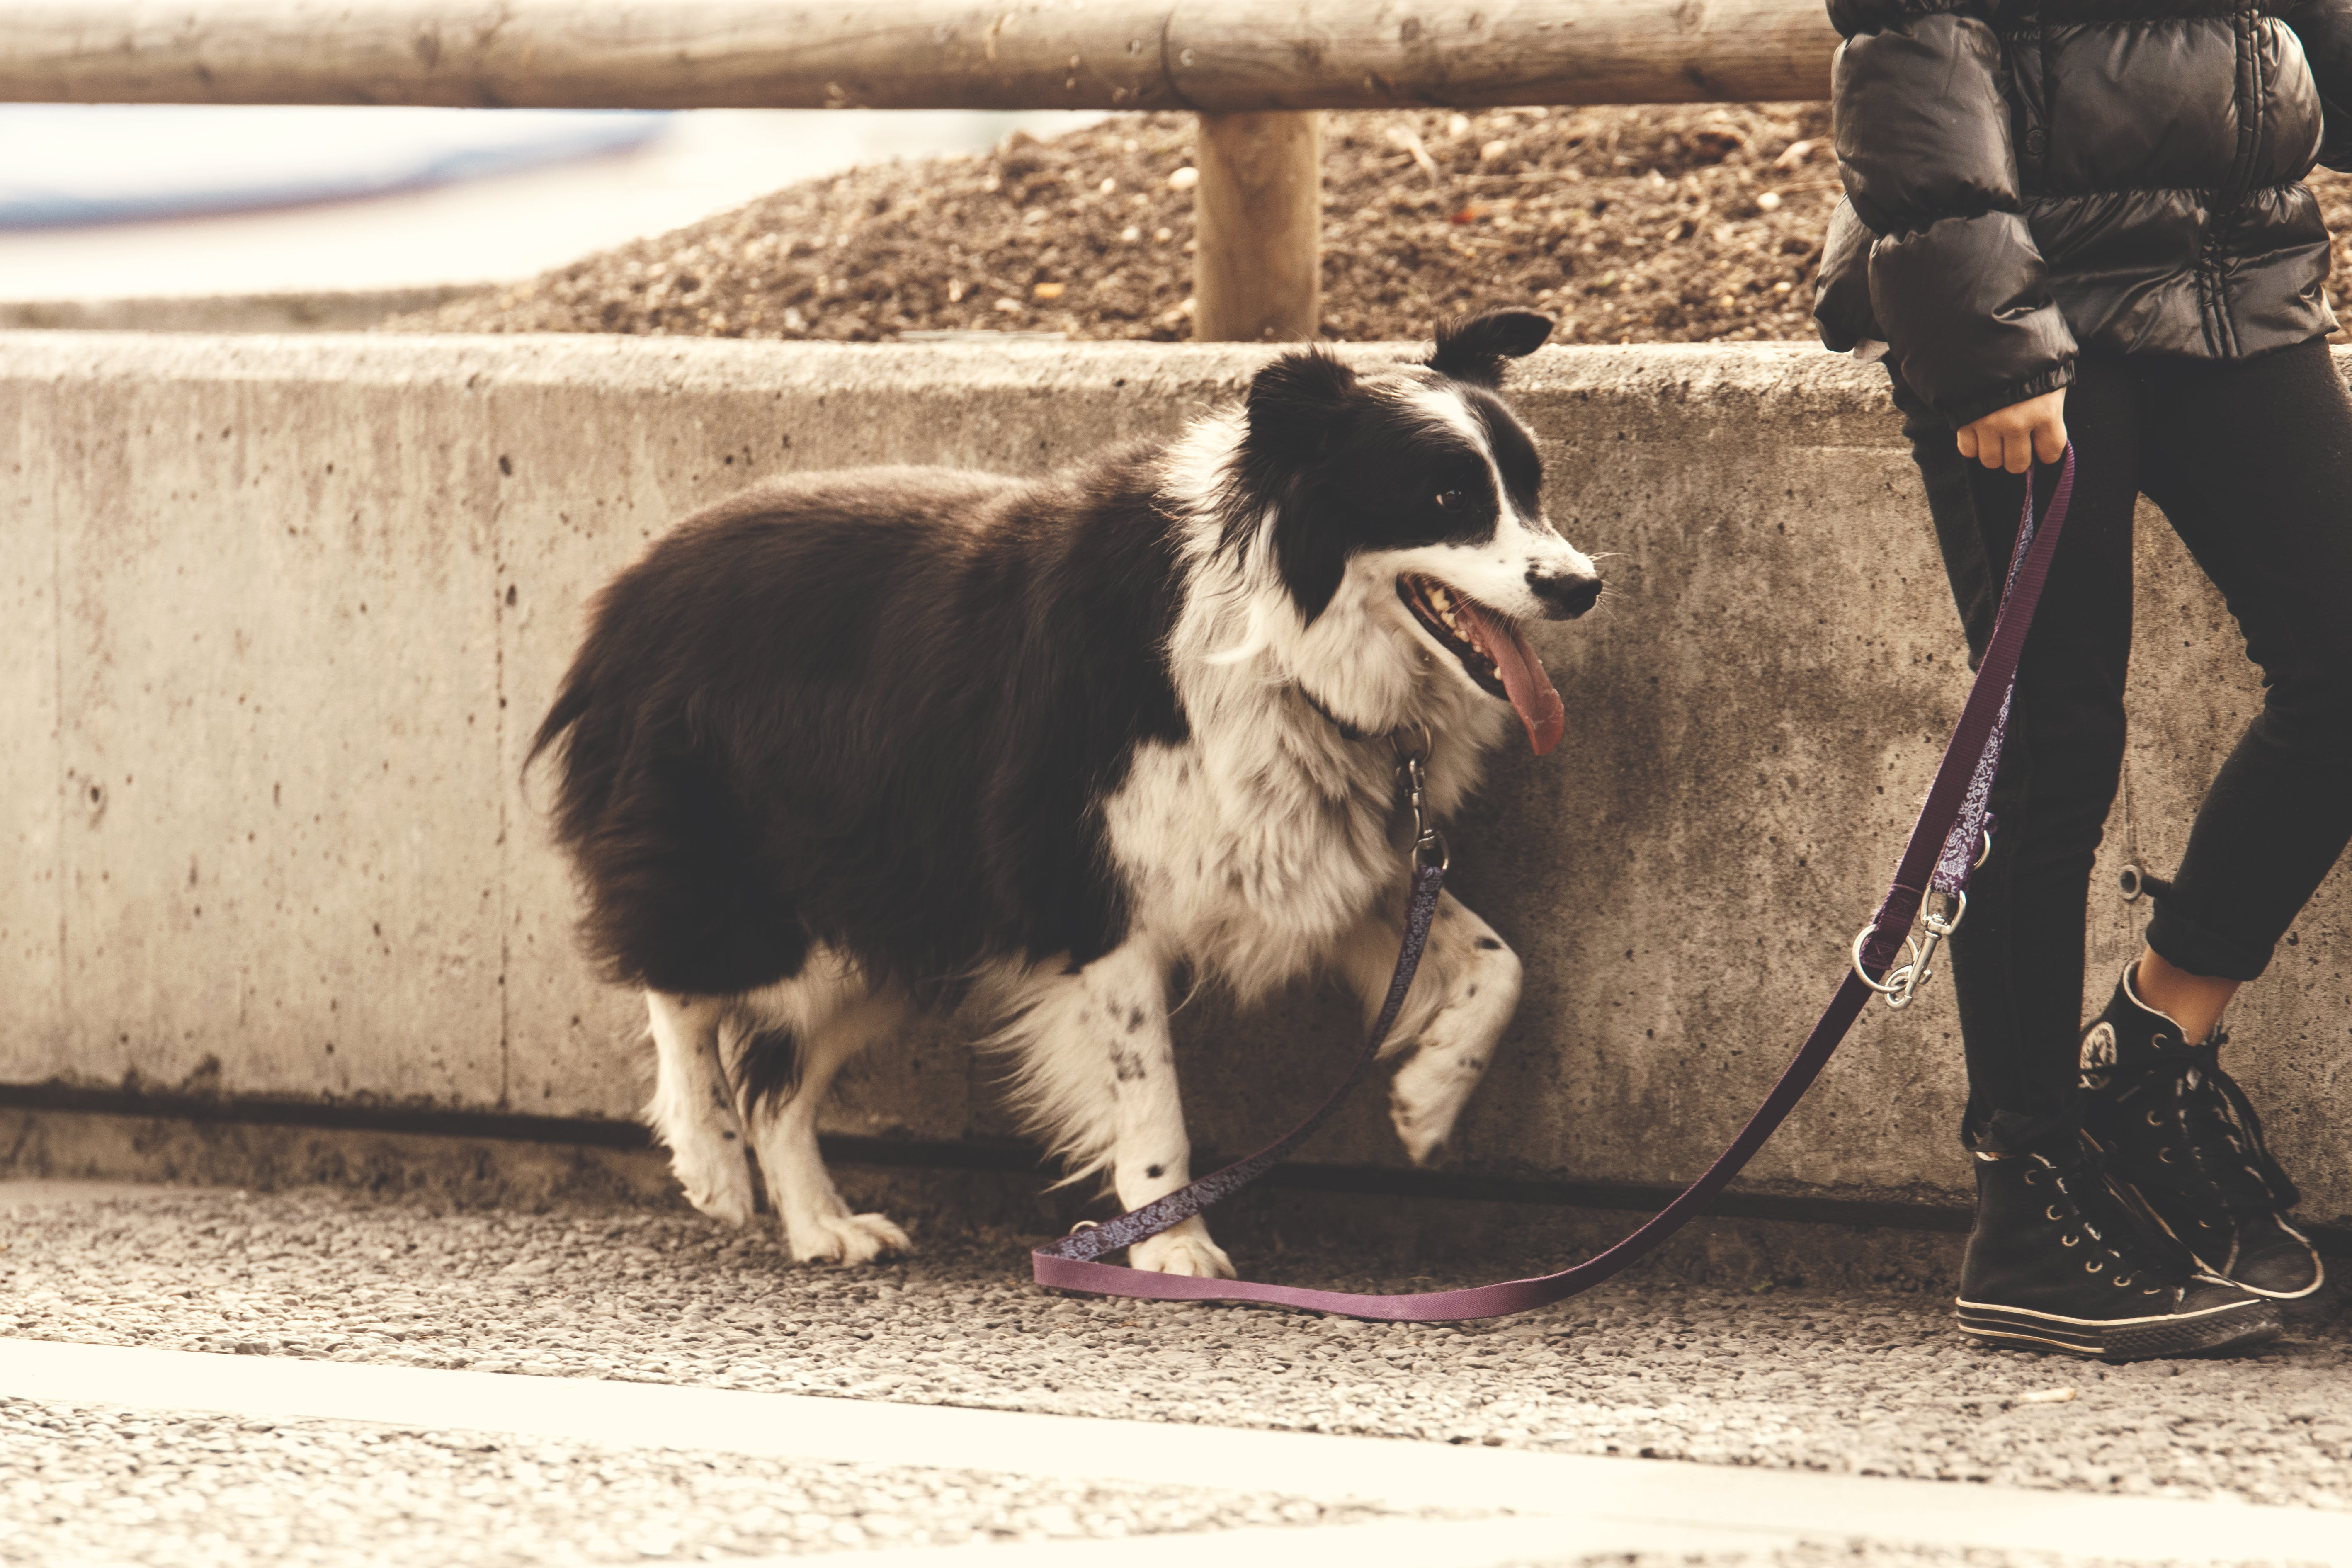 Person Holding Pet Dog Leash While Standing on Concrete Road